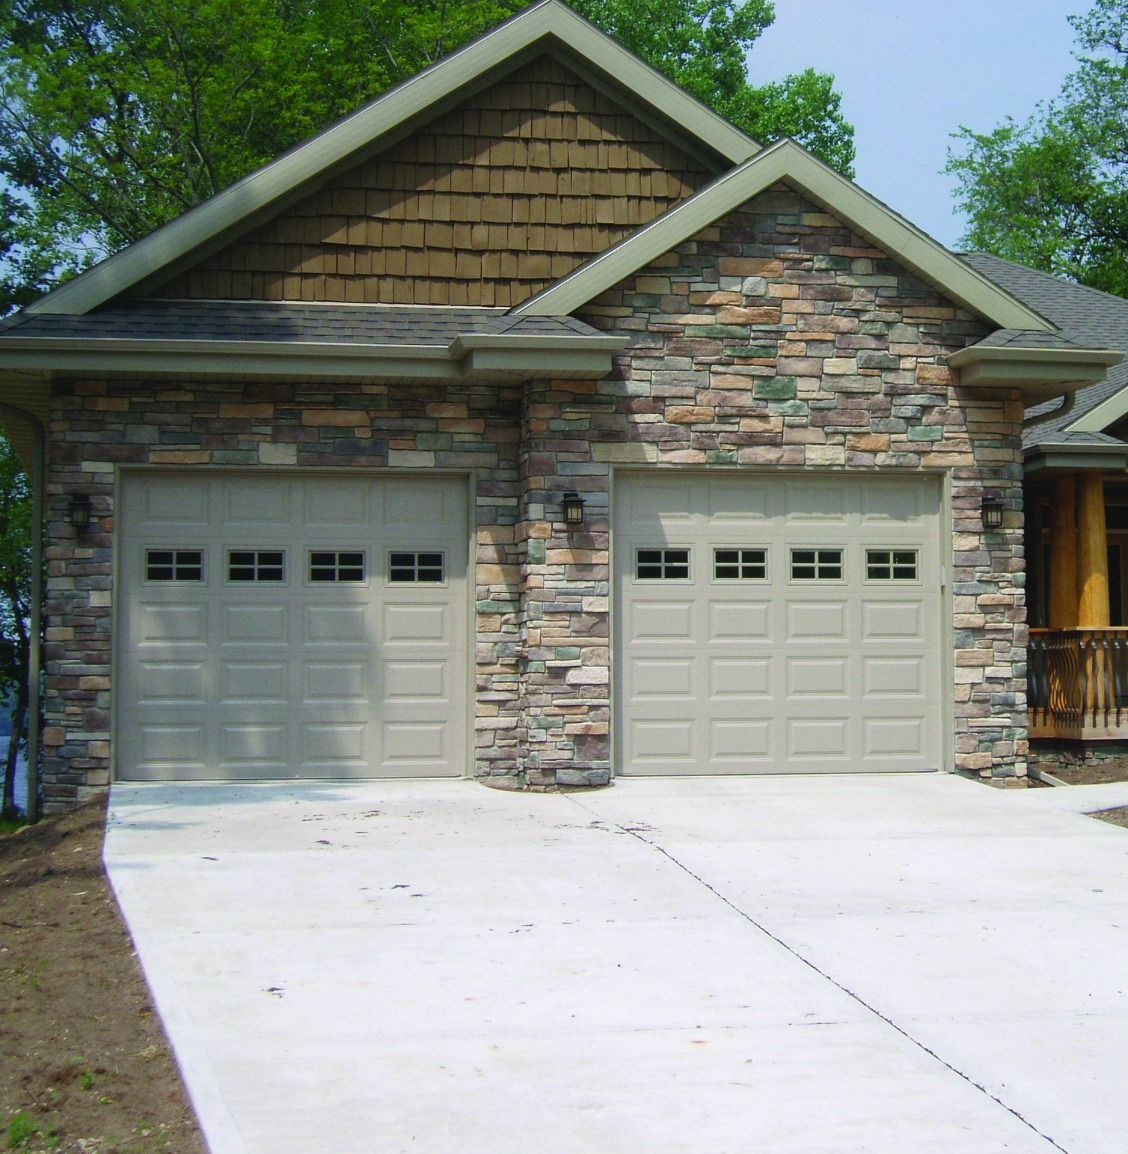 Enhance The Exterior Of Your Home With Stone Veneer Siding From Menards Available In A Variety Of Col Stone Siding Exterior Exterior Brick Stone Veneer Siding